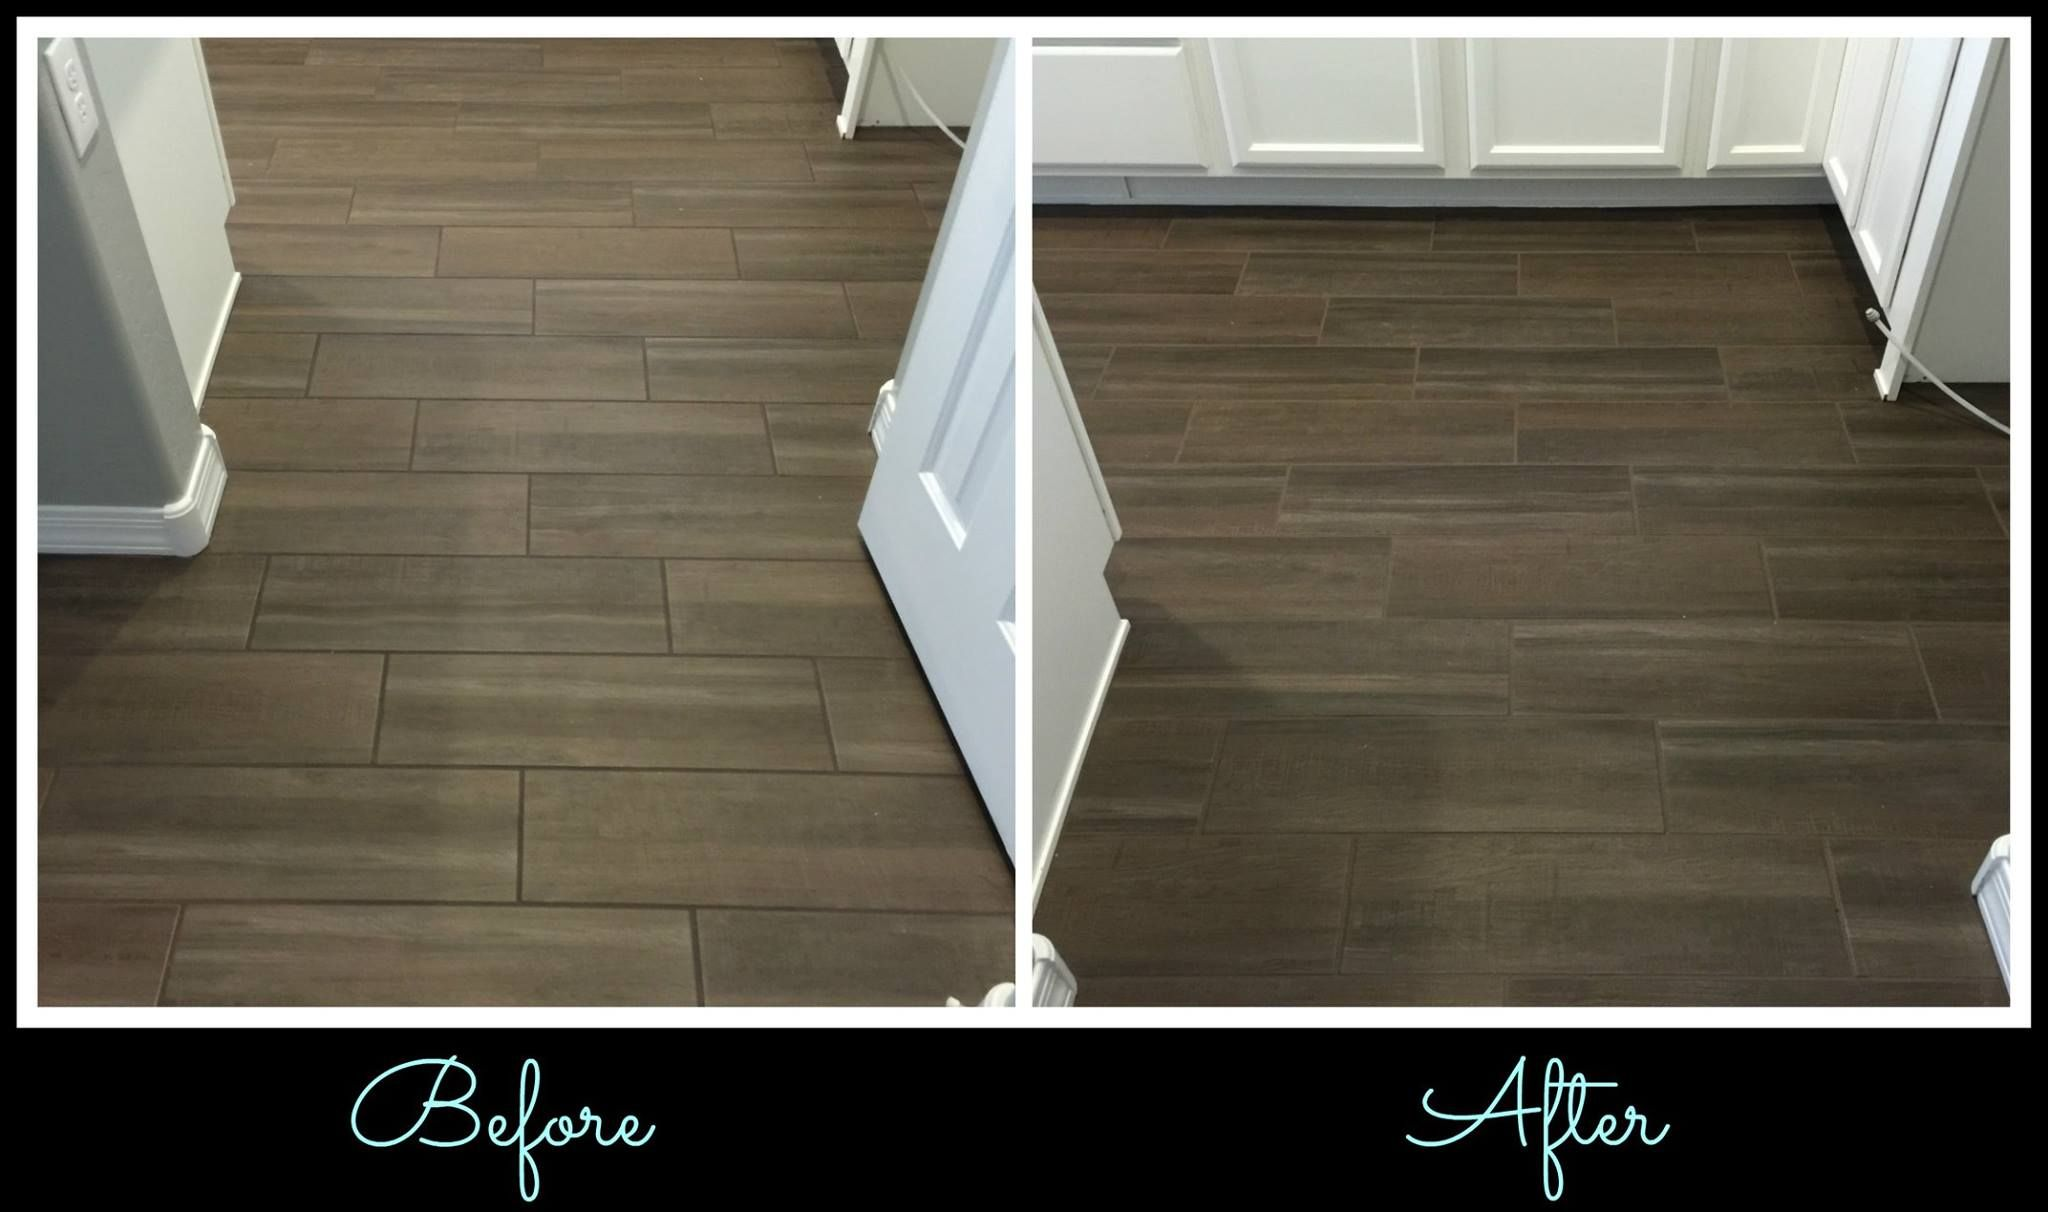 Color sealing grout lines on wood look tile pv interiors tile color sealing grout lines on wood look tile doublecrazyfo Gallery